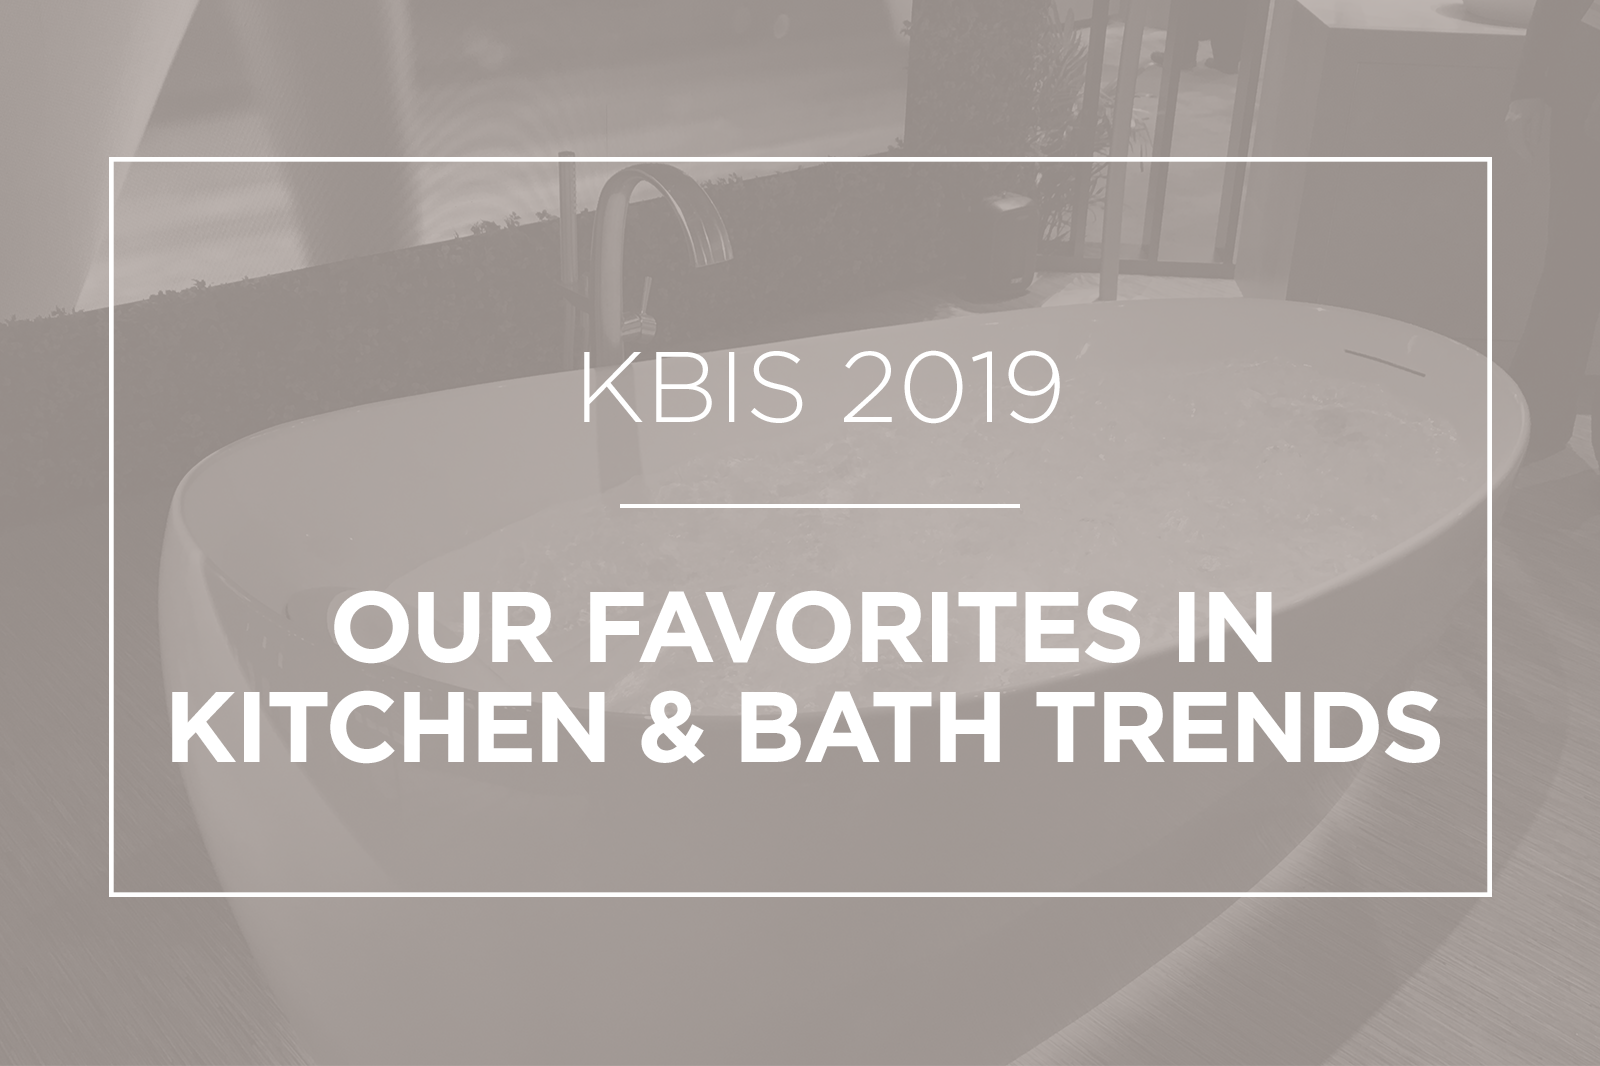 kbis-2019-favorites-feat-image